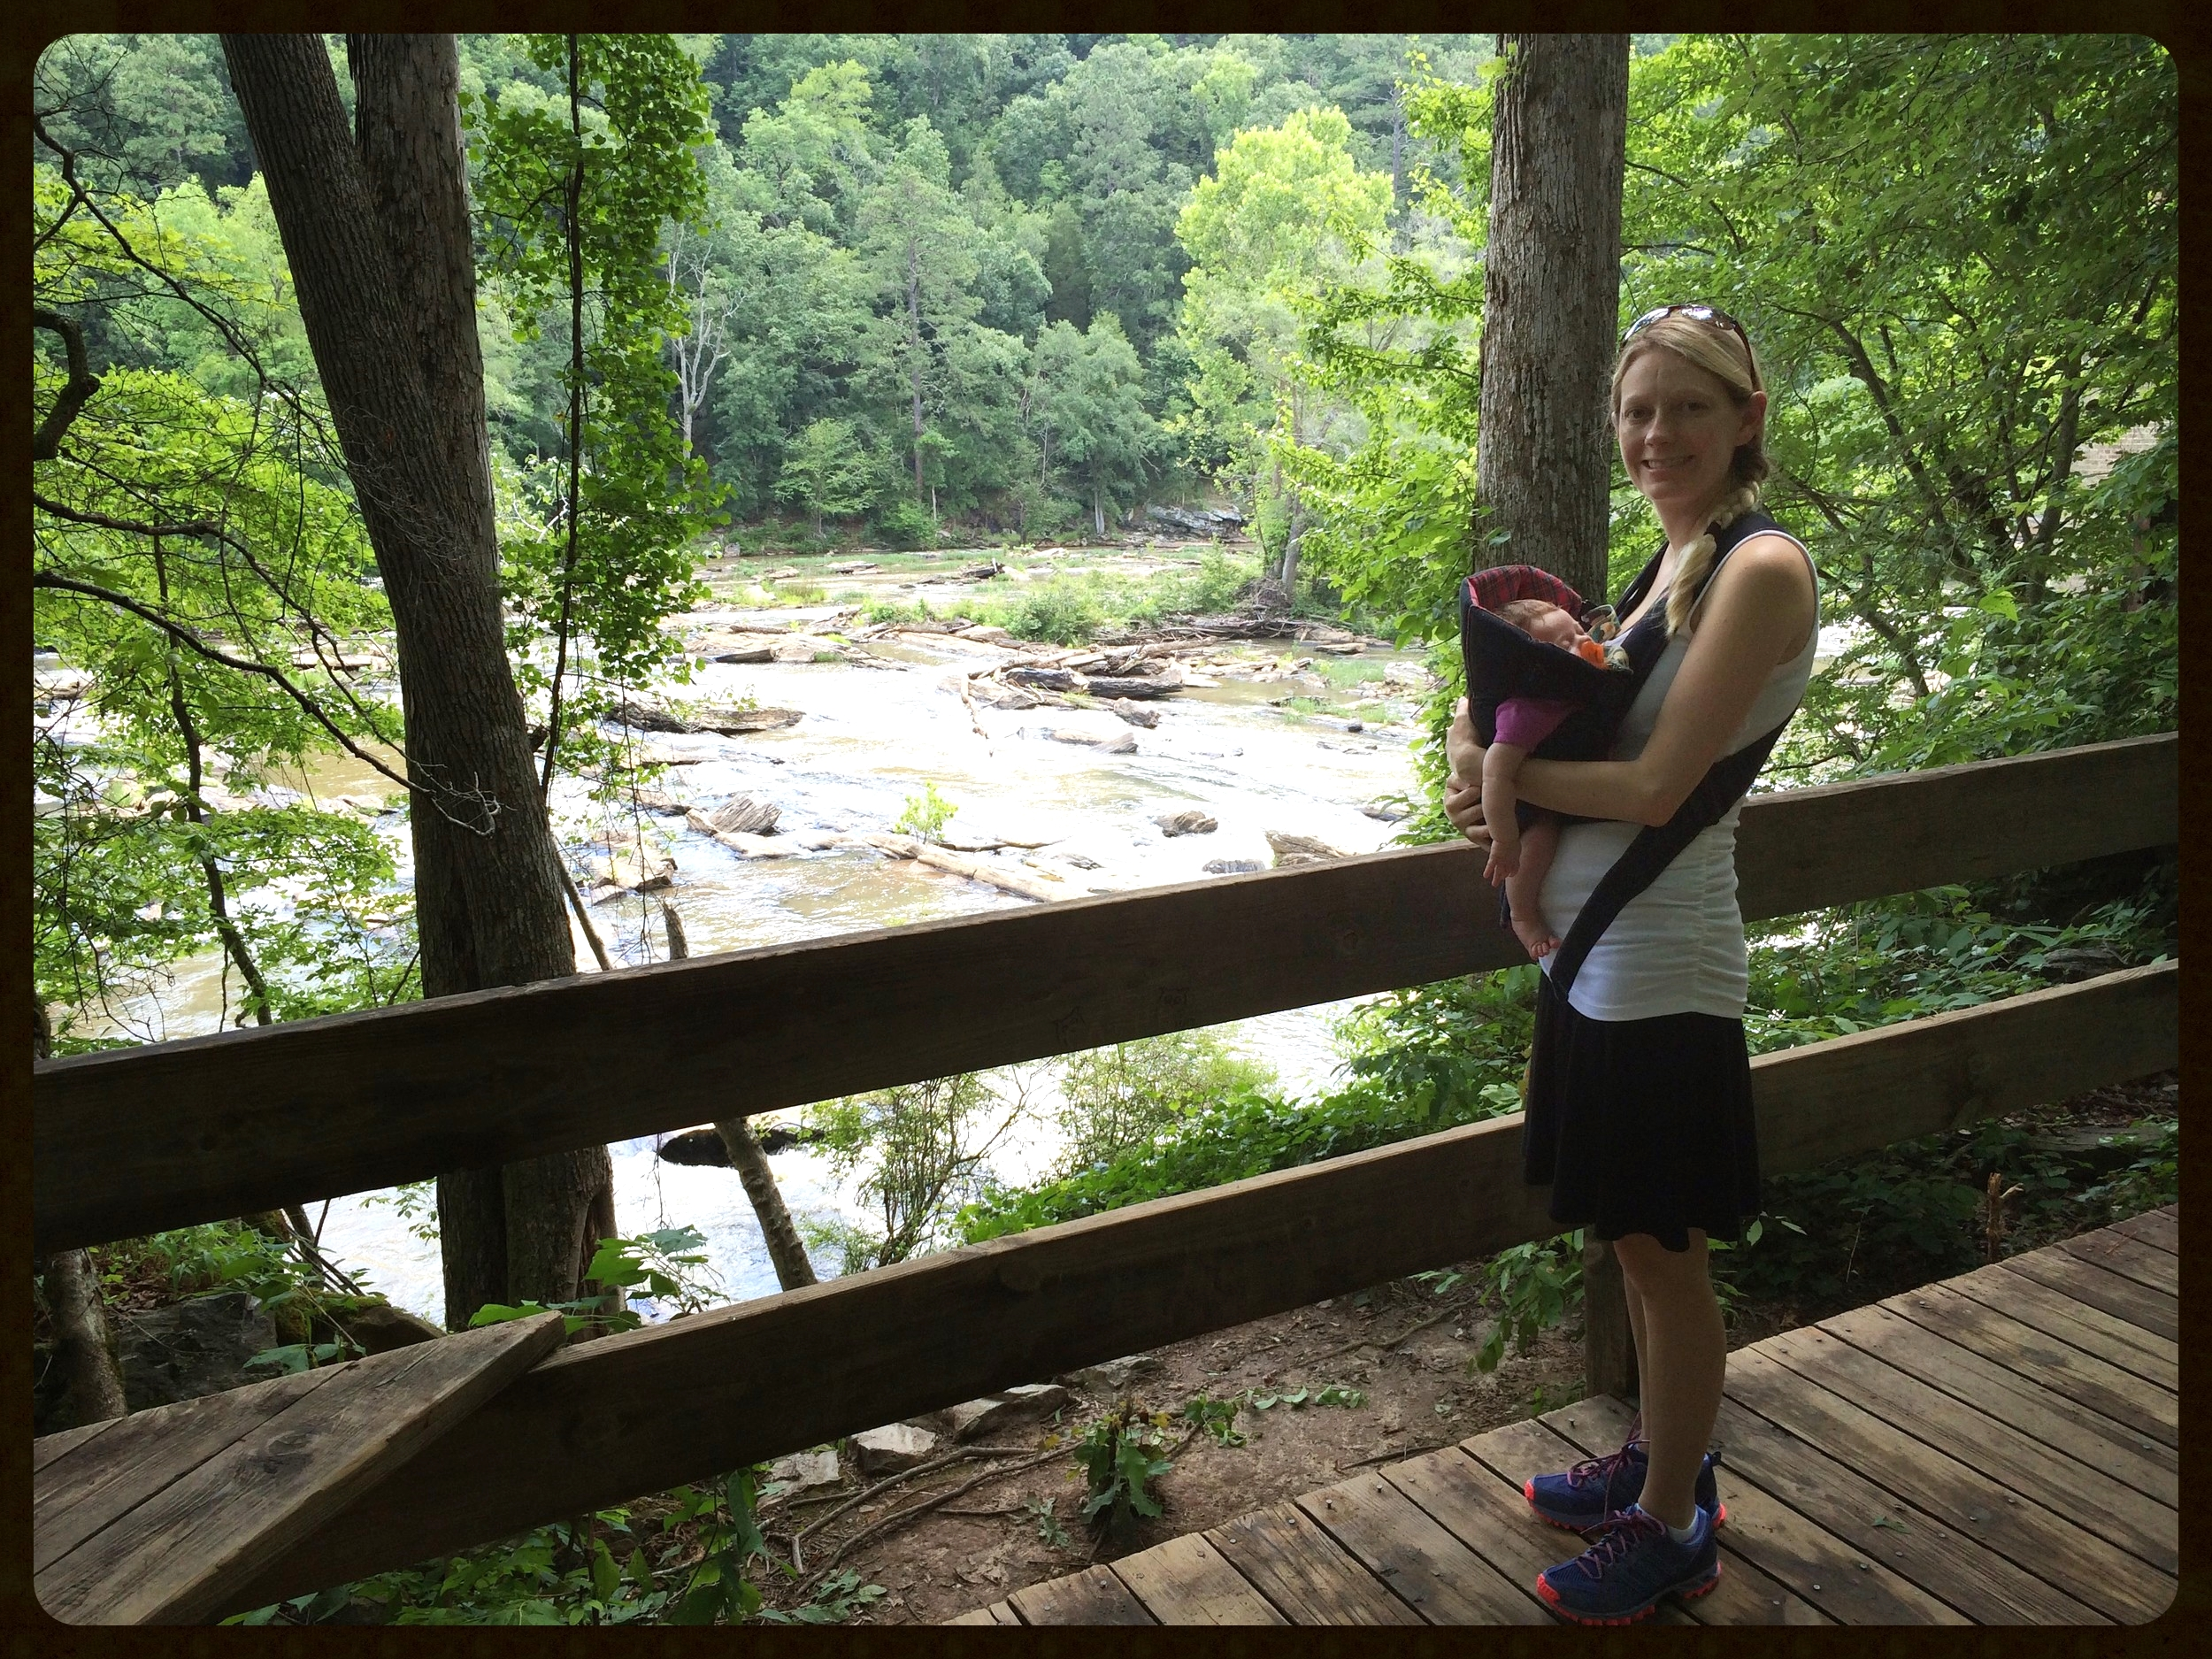 Ava at 23 days old, hiking at Sweetwater Creek State Park